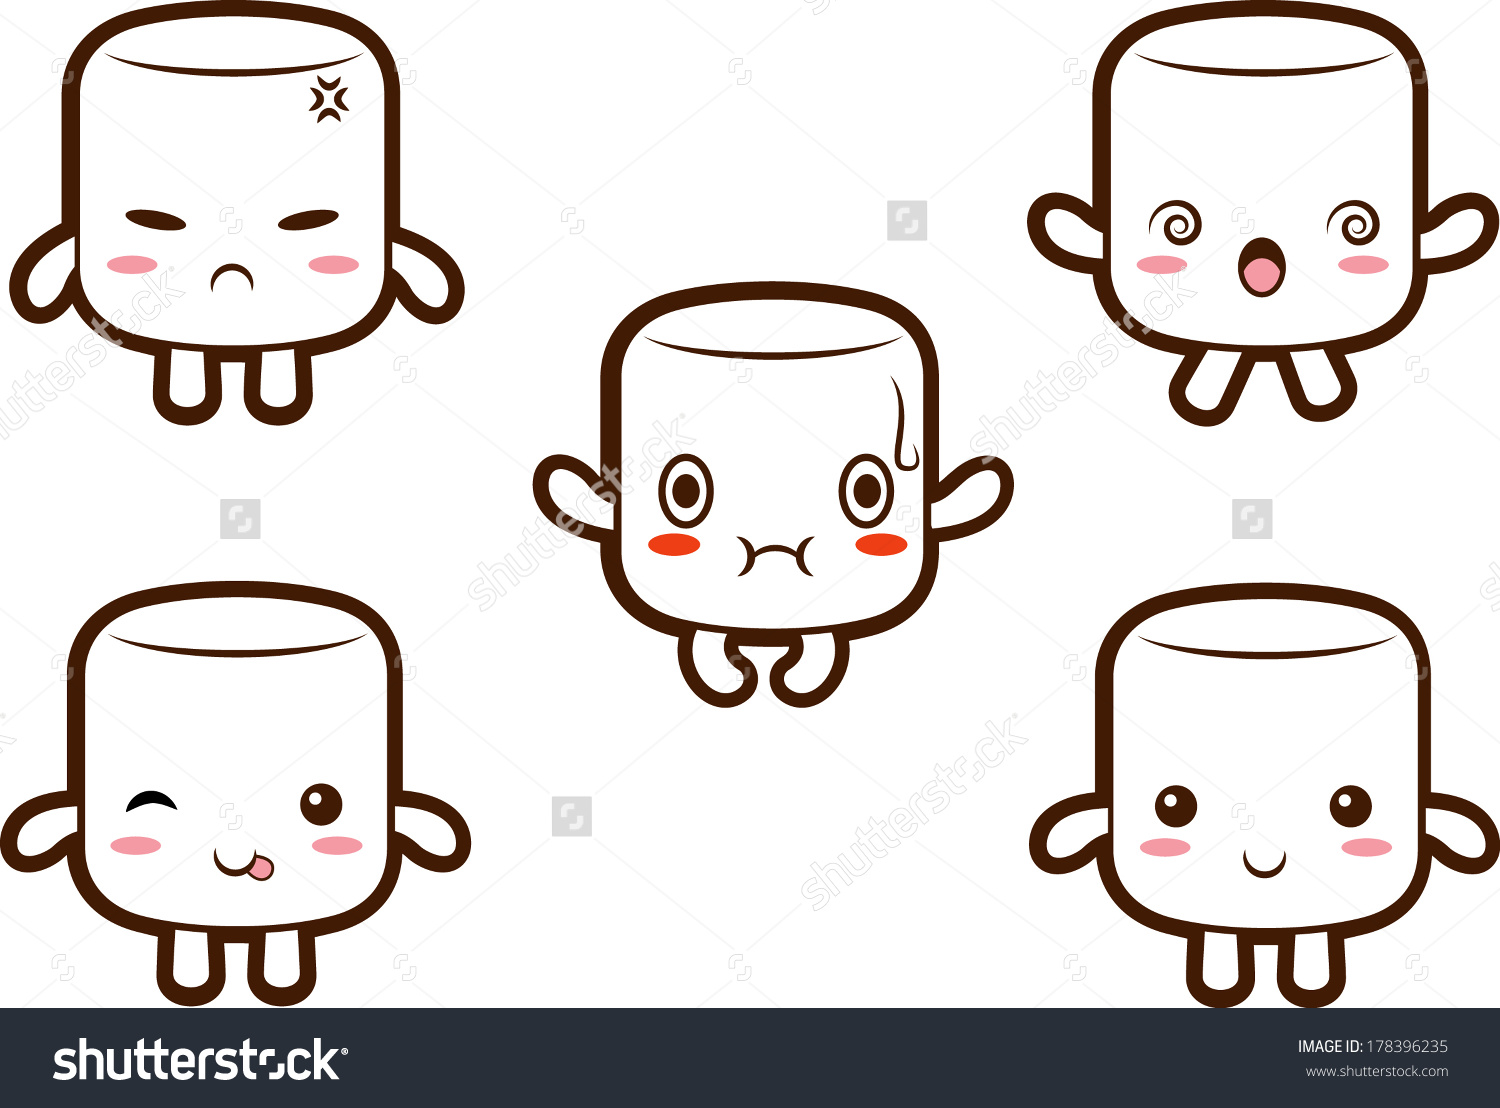 Marshmellow clipart cartoon Marshmallow Cute clipart clipart marshmallow